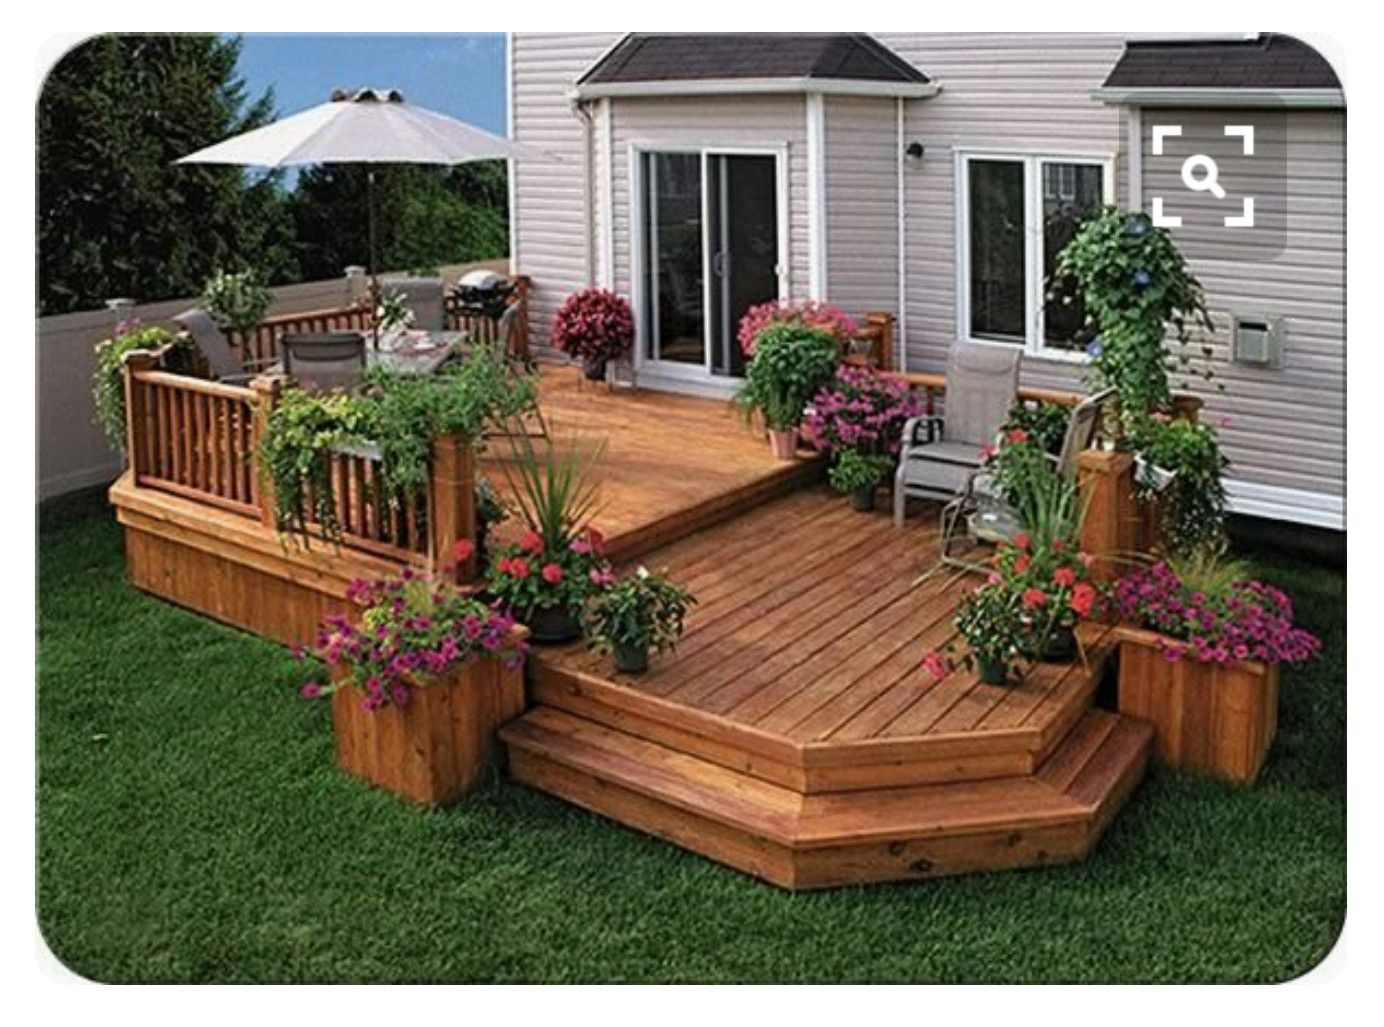 Pin by Wendy Jones on My Saves | Deck designs backyard ... on 2 Level Backyard Ideas id=97825